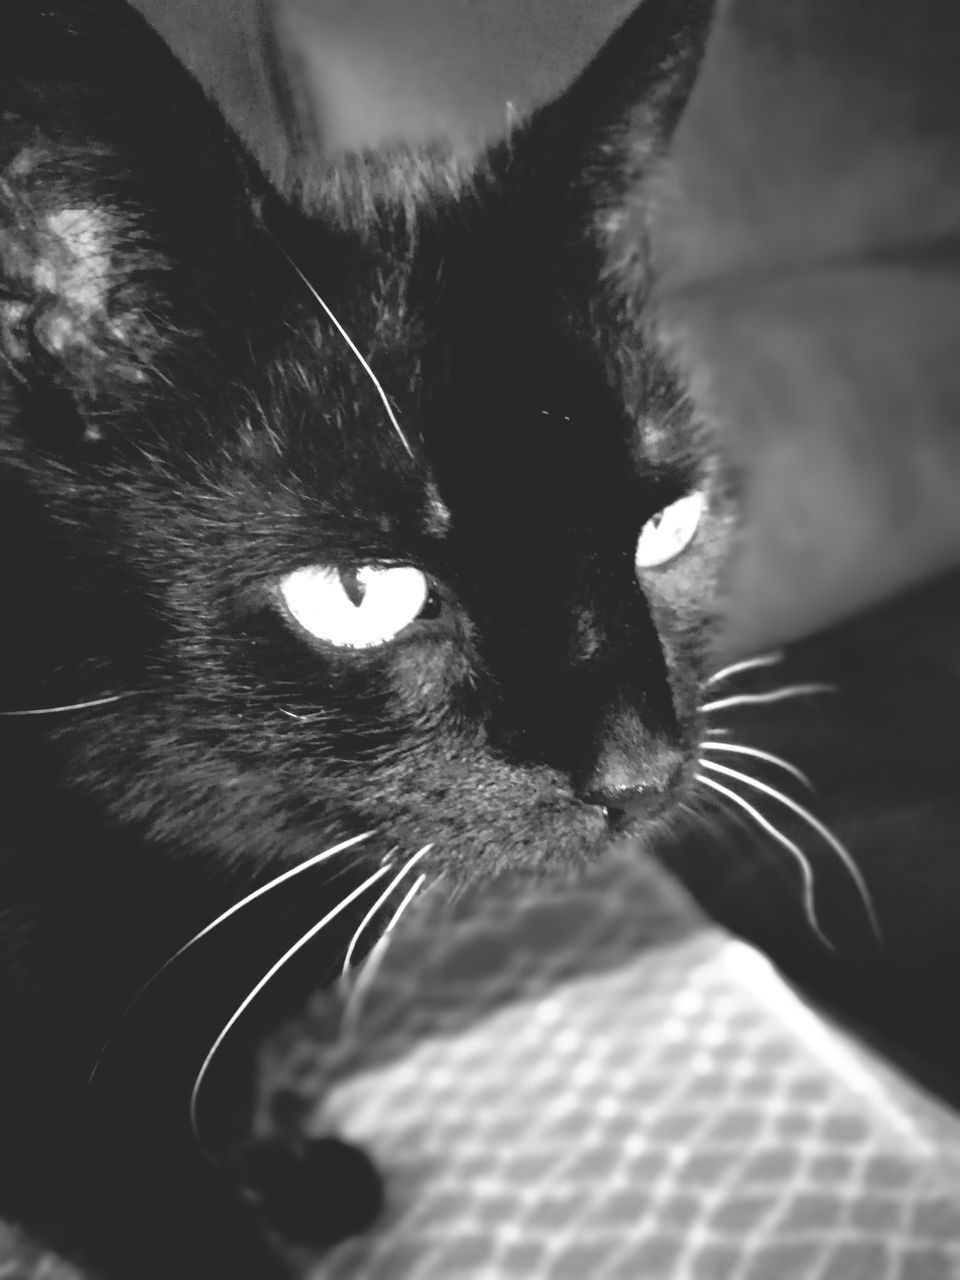 domestic cat, one animal, pets, domestic animals, animal themes, mammal, feline, whisker, indoors, animal head, close-up, no people, day